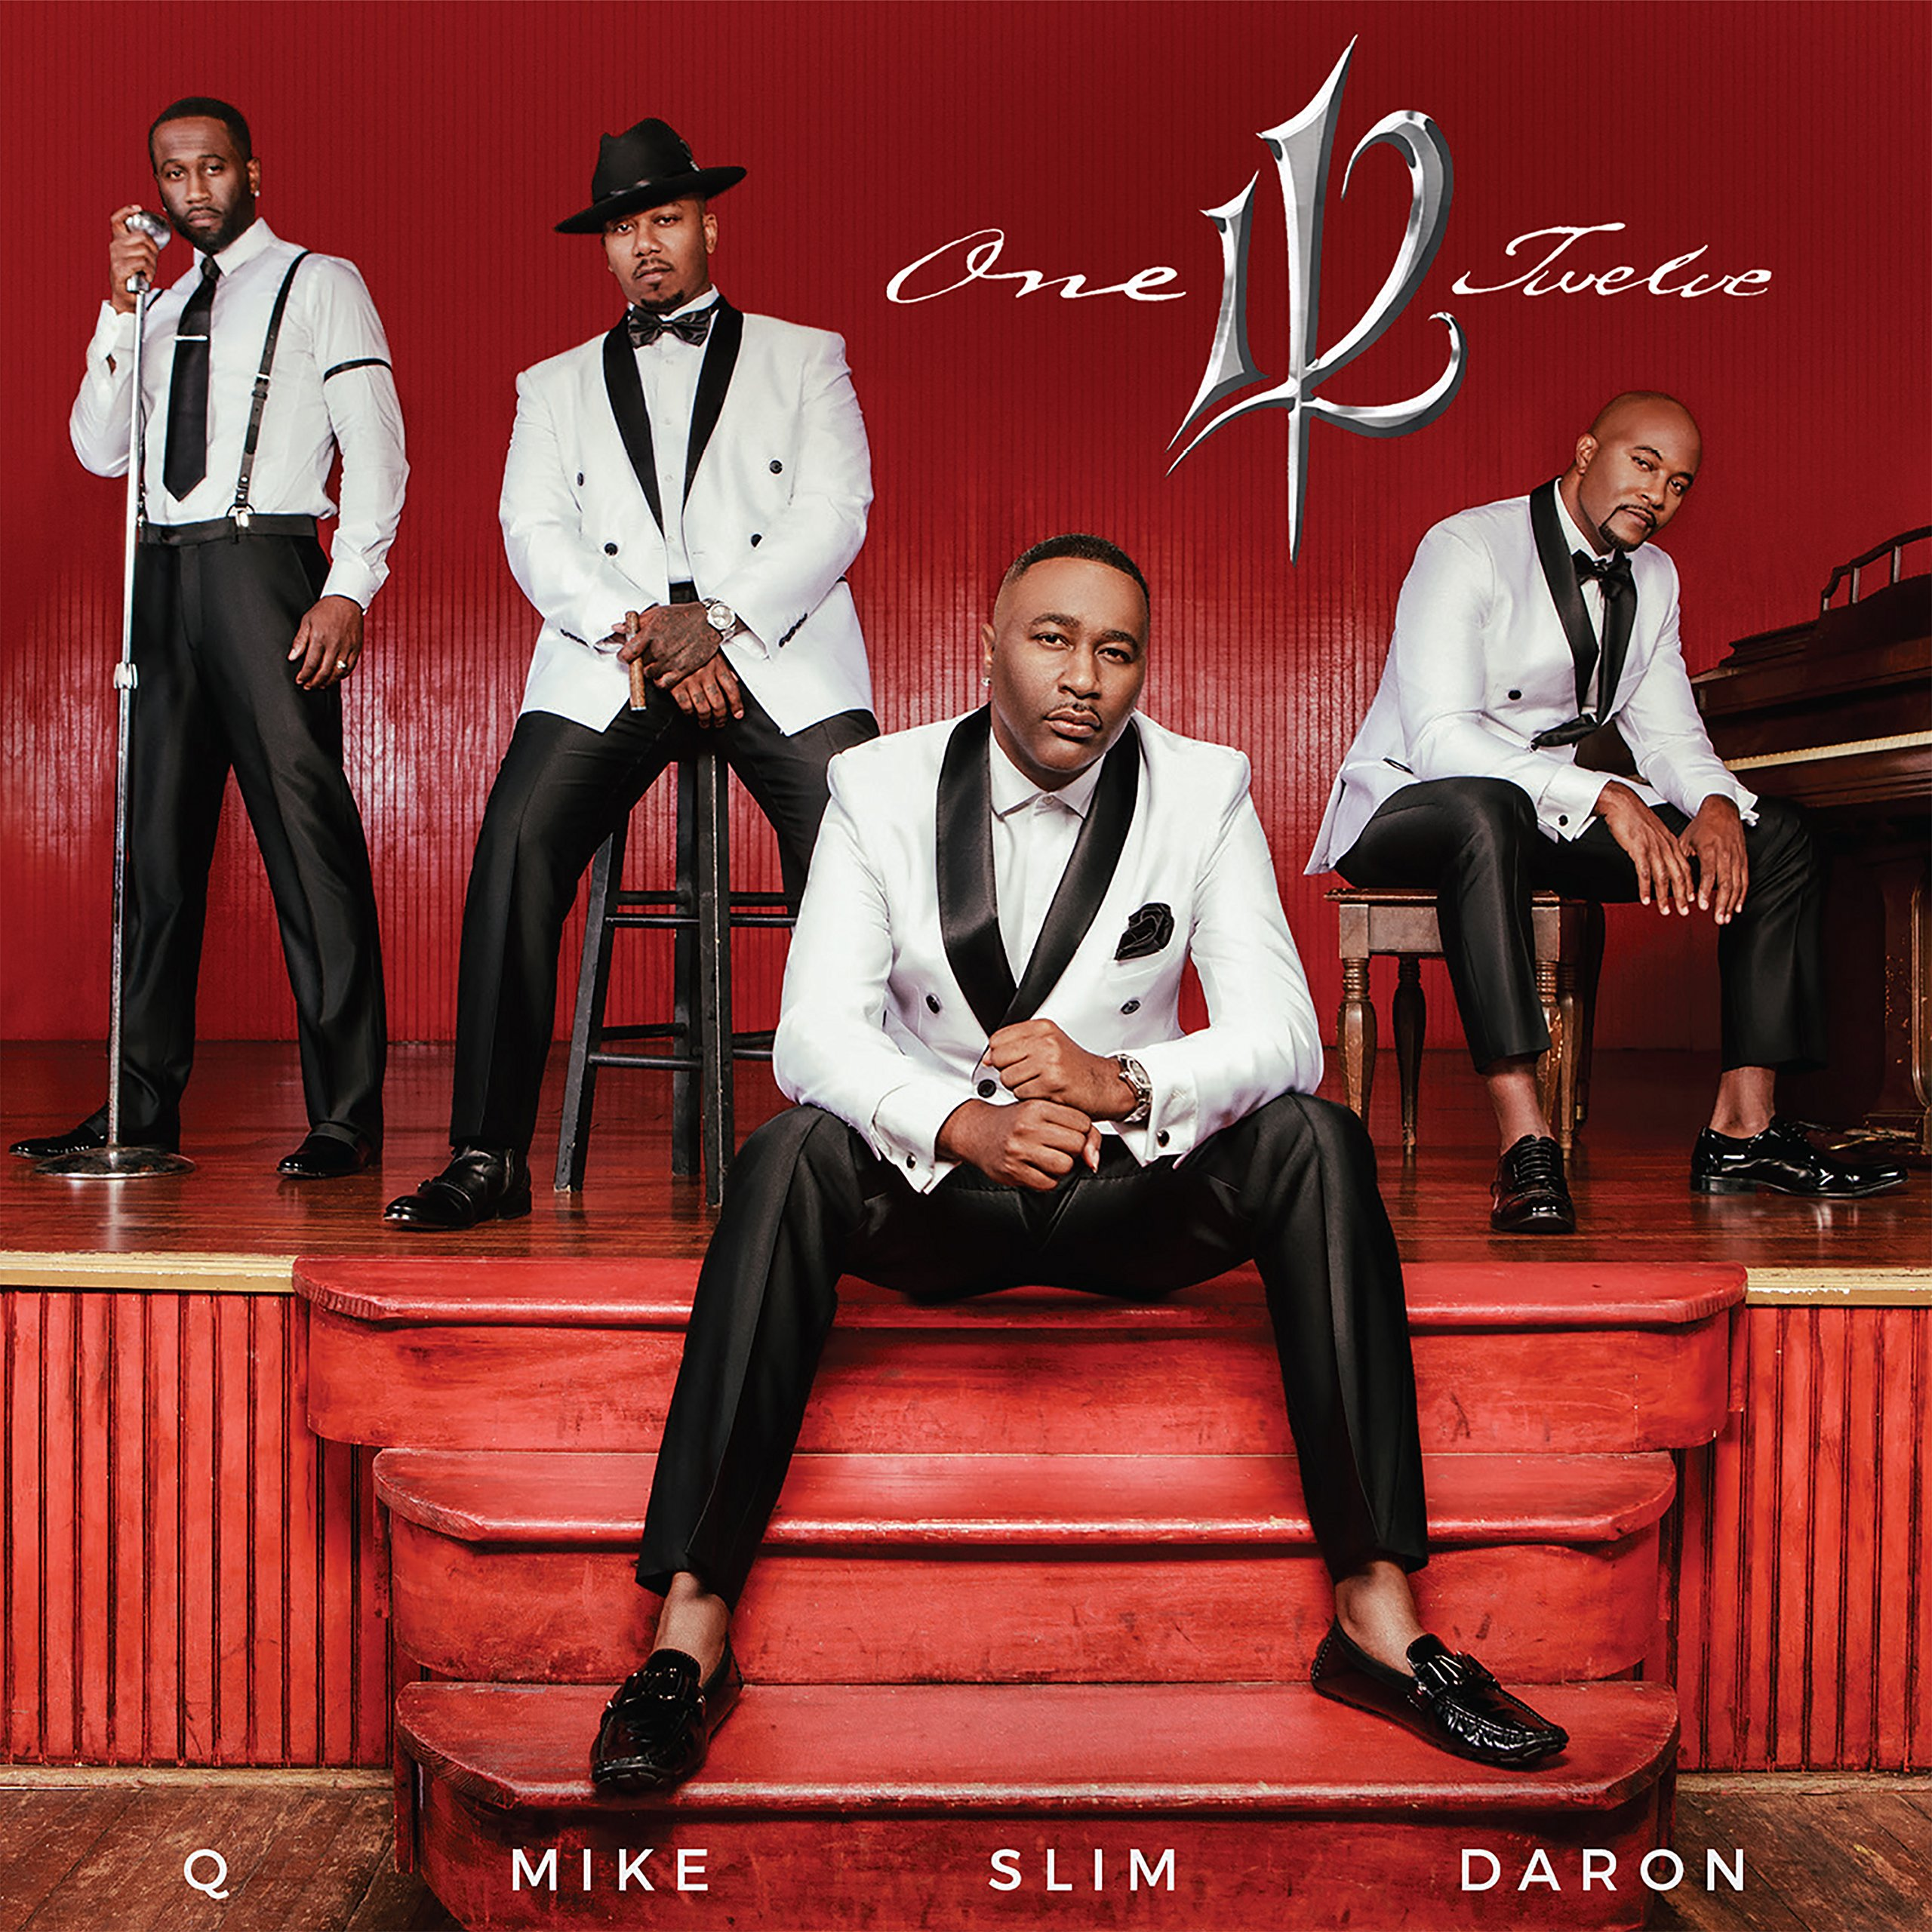 112 - Q Mike Slim Daron (CD)